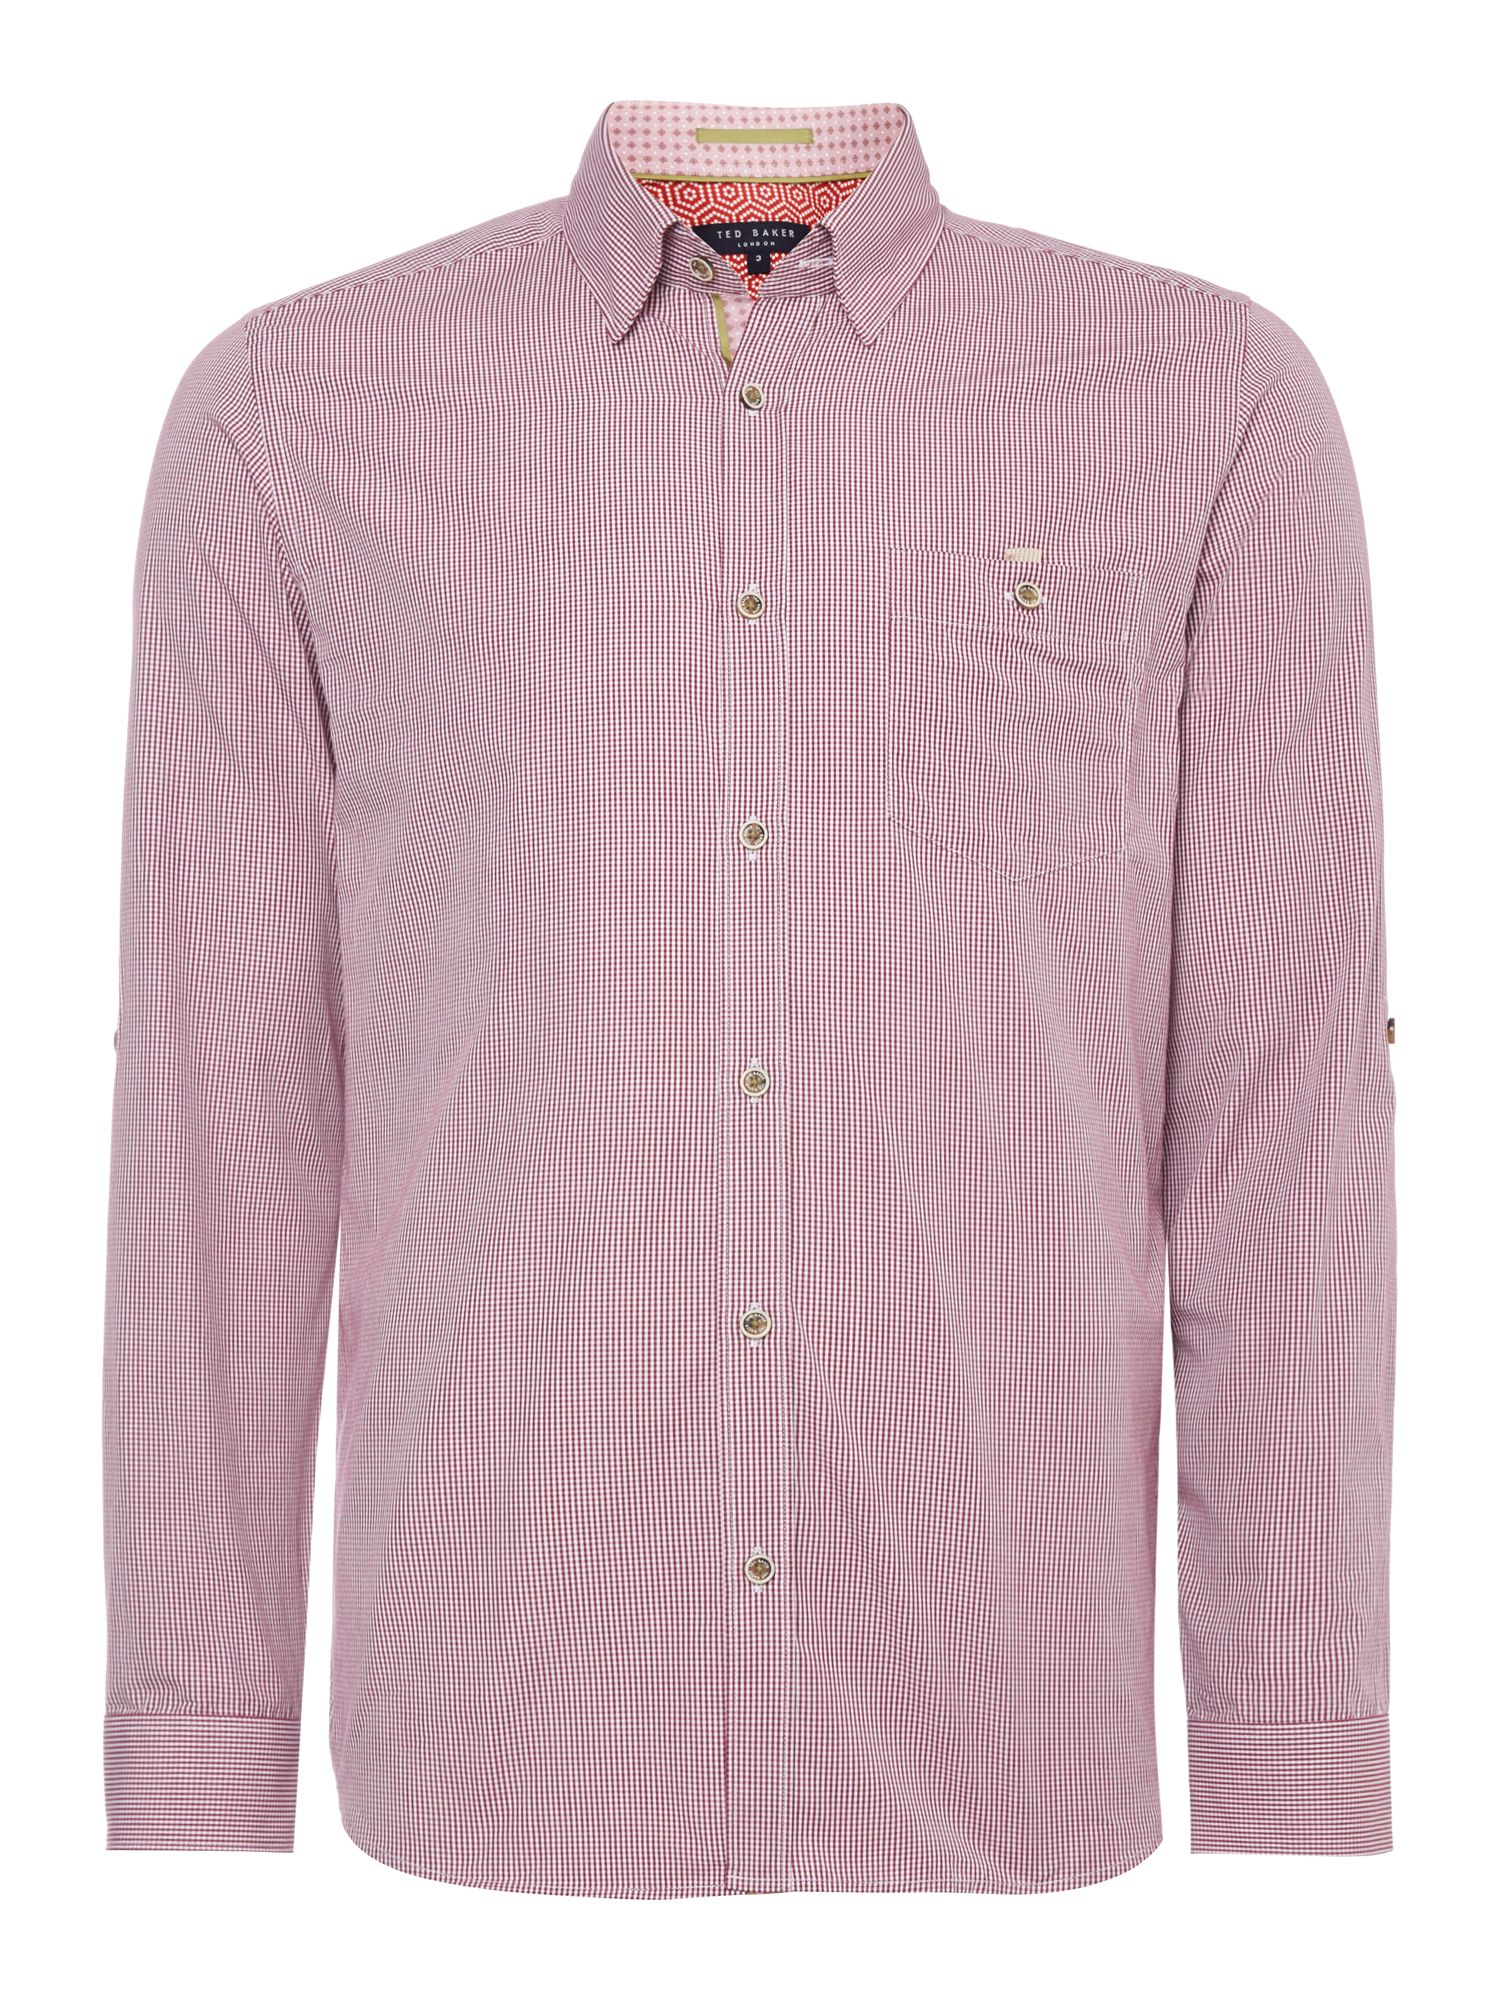 Soft check long sleeve shirt